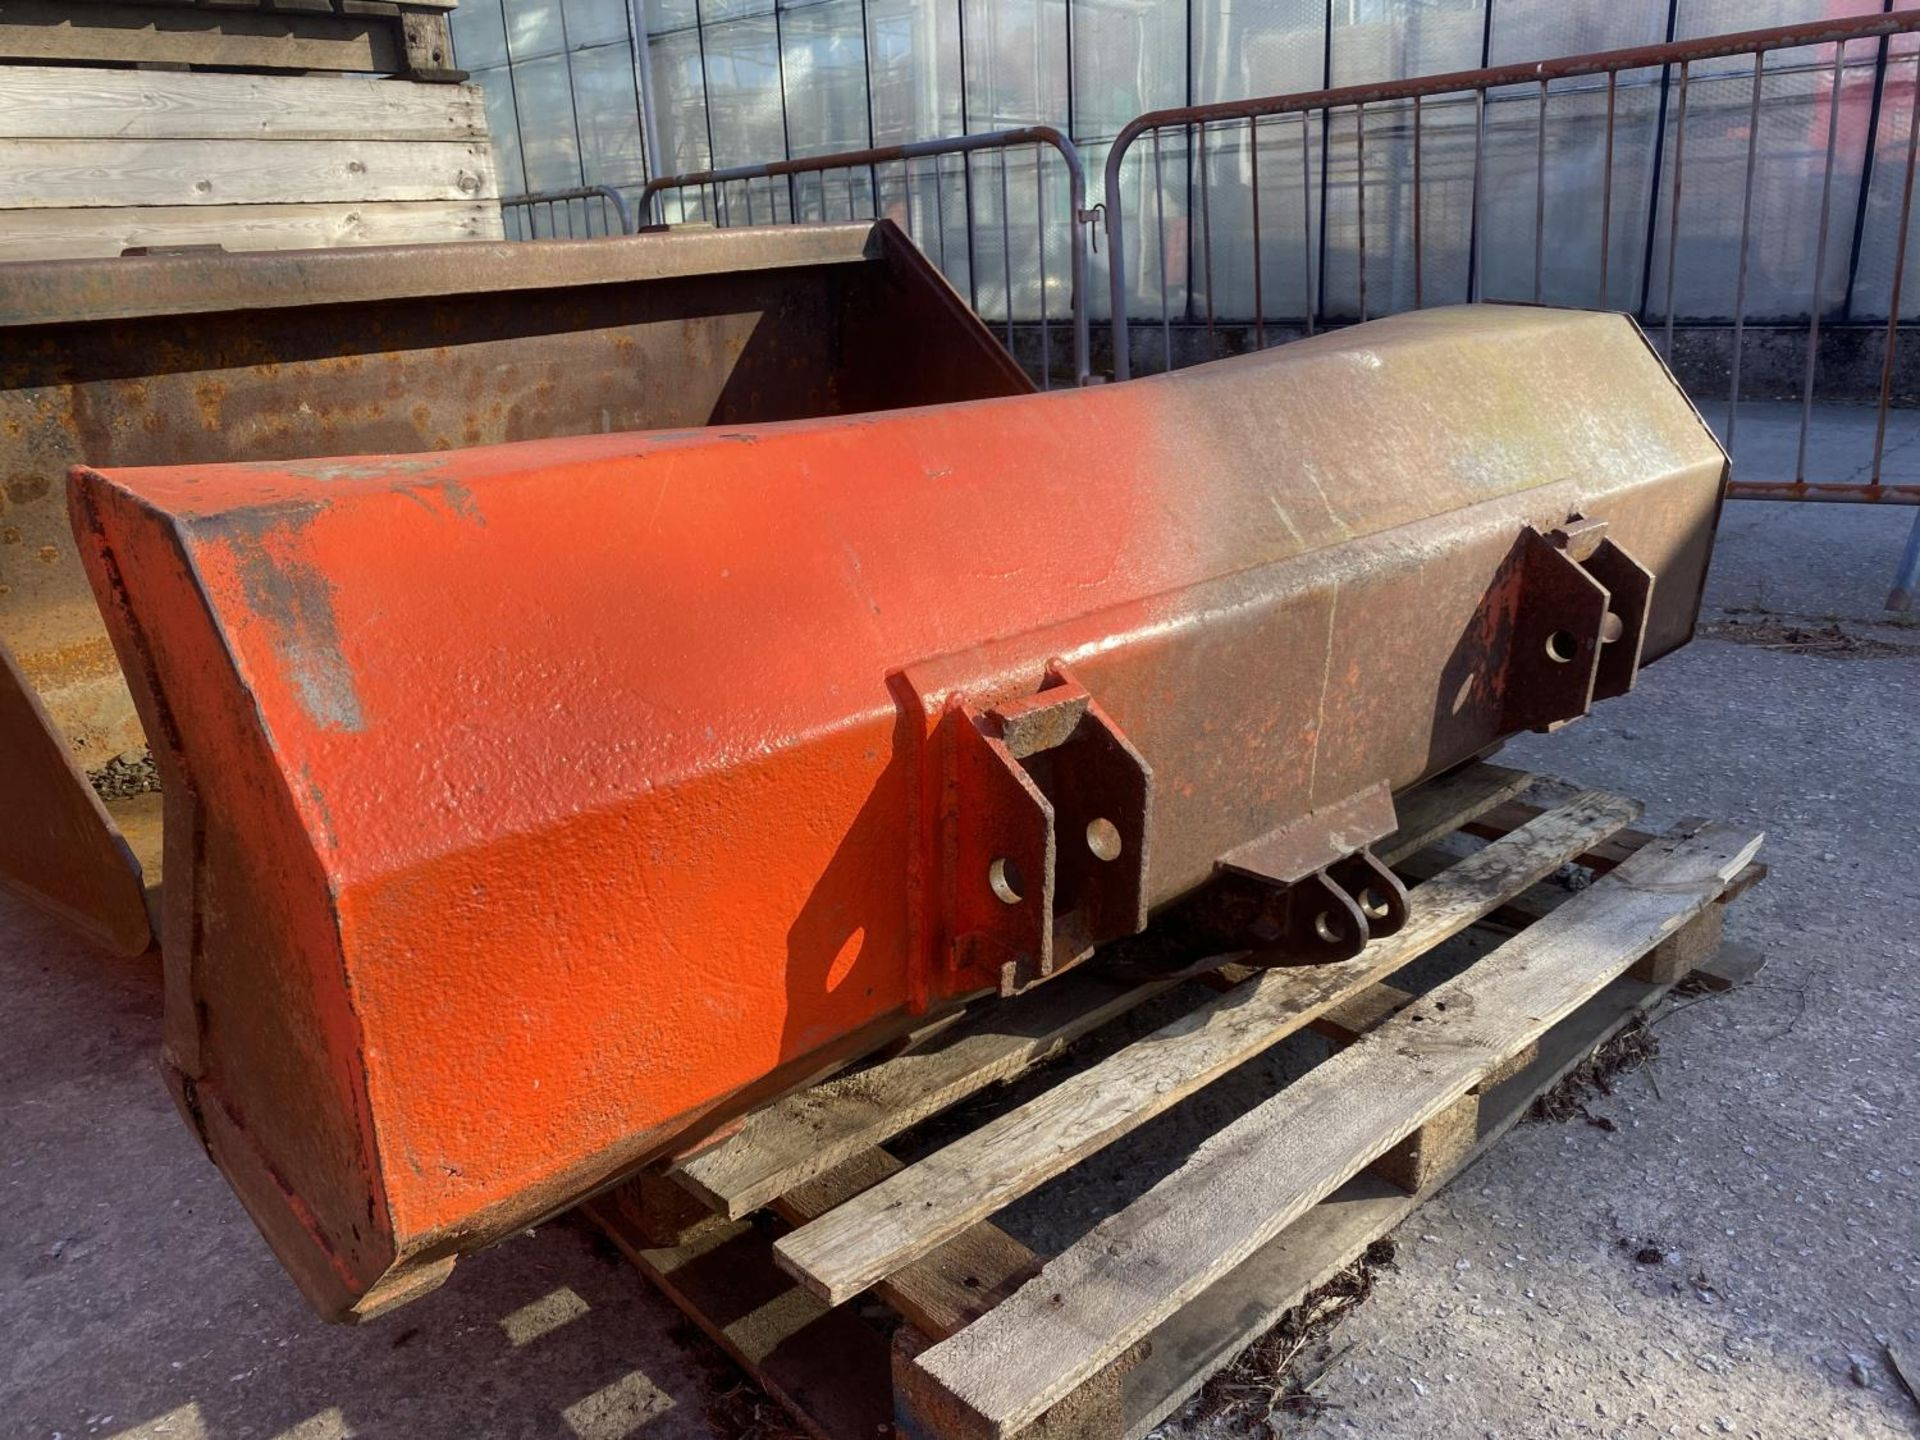 A FORE END LOADER BUCKET (FITS LOT 50) - Image 3 of 5